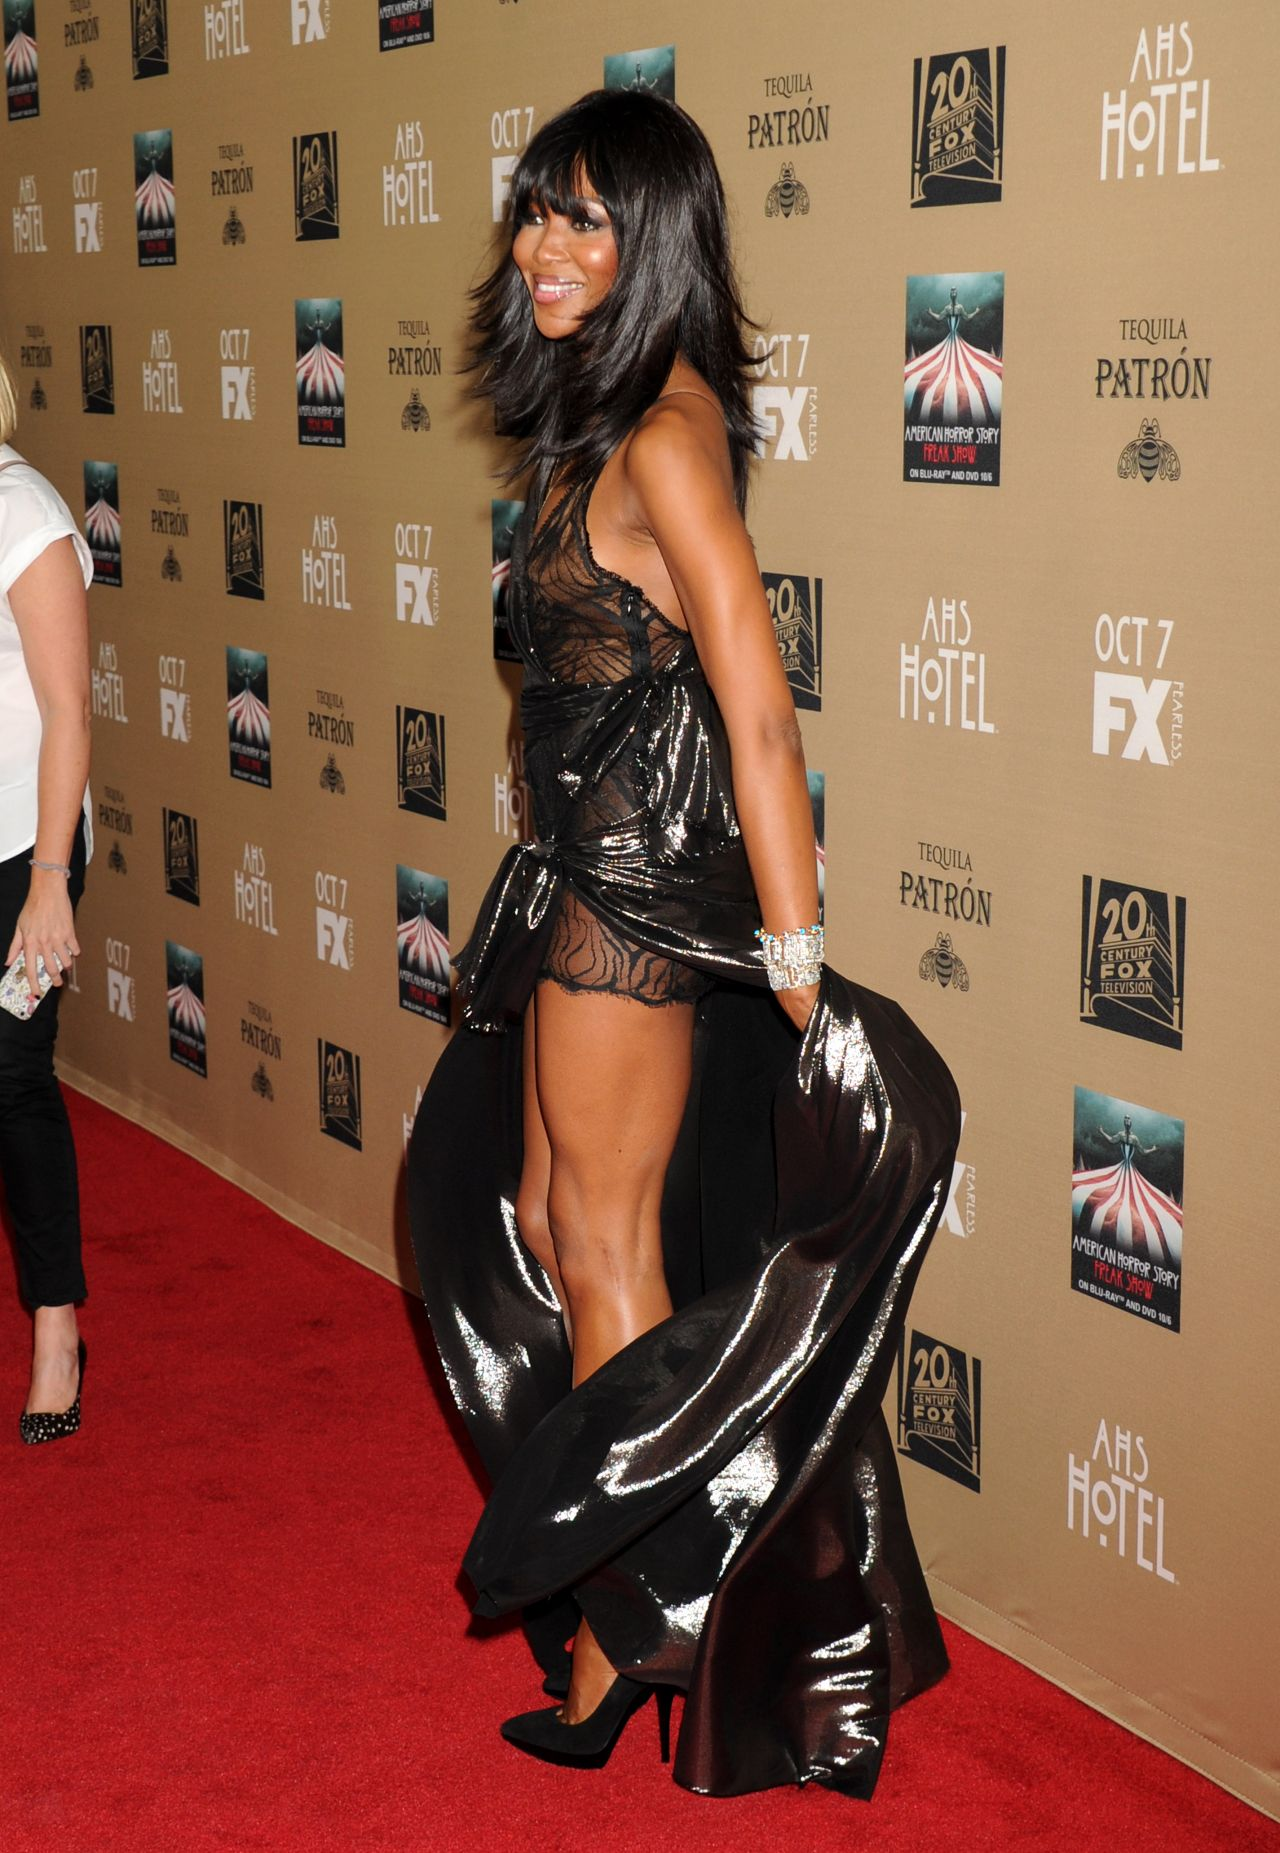 naomi-campbell-fx-s-american-horror-story-hotel-screening-in-los-angeles_13